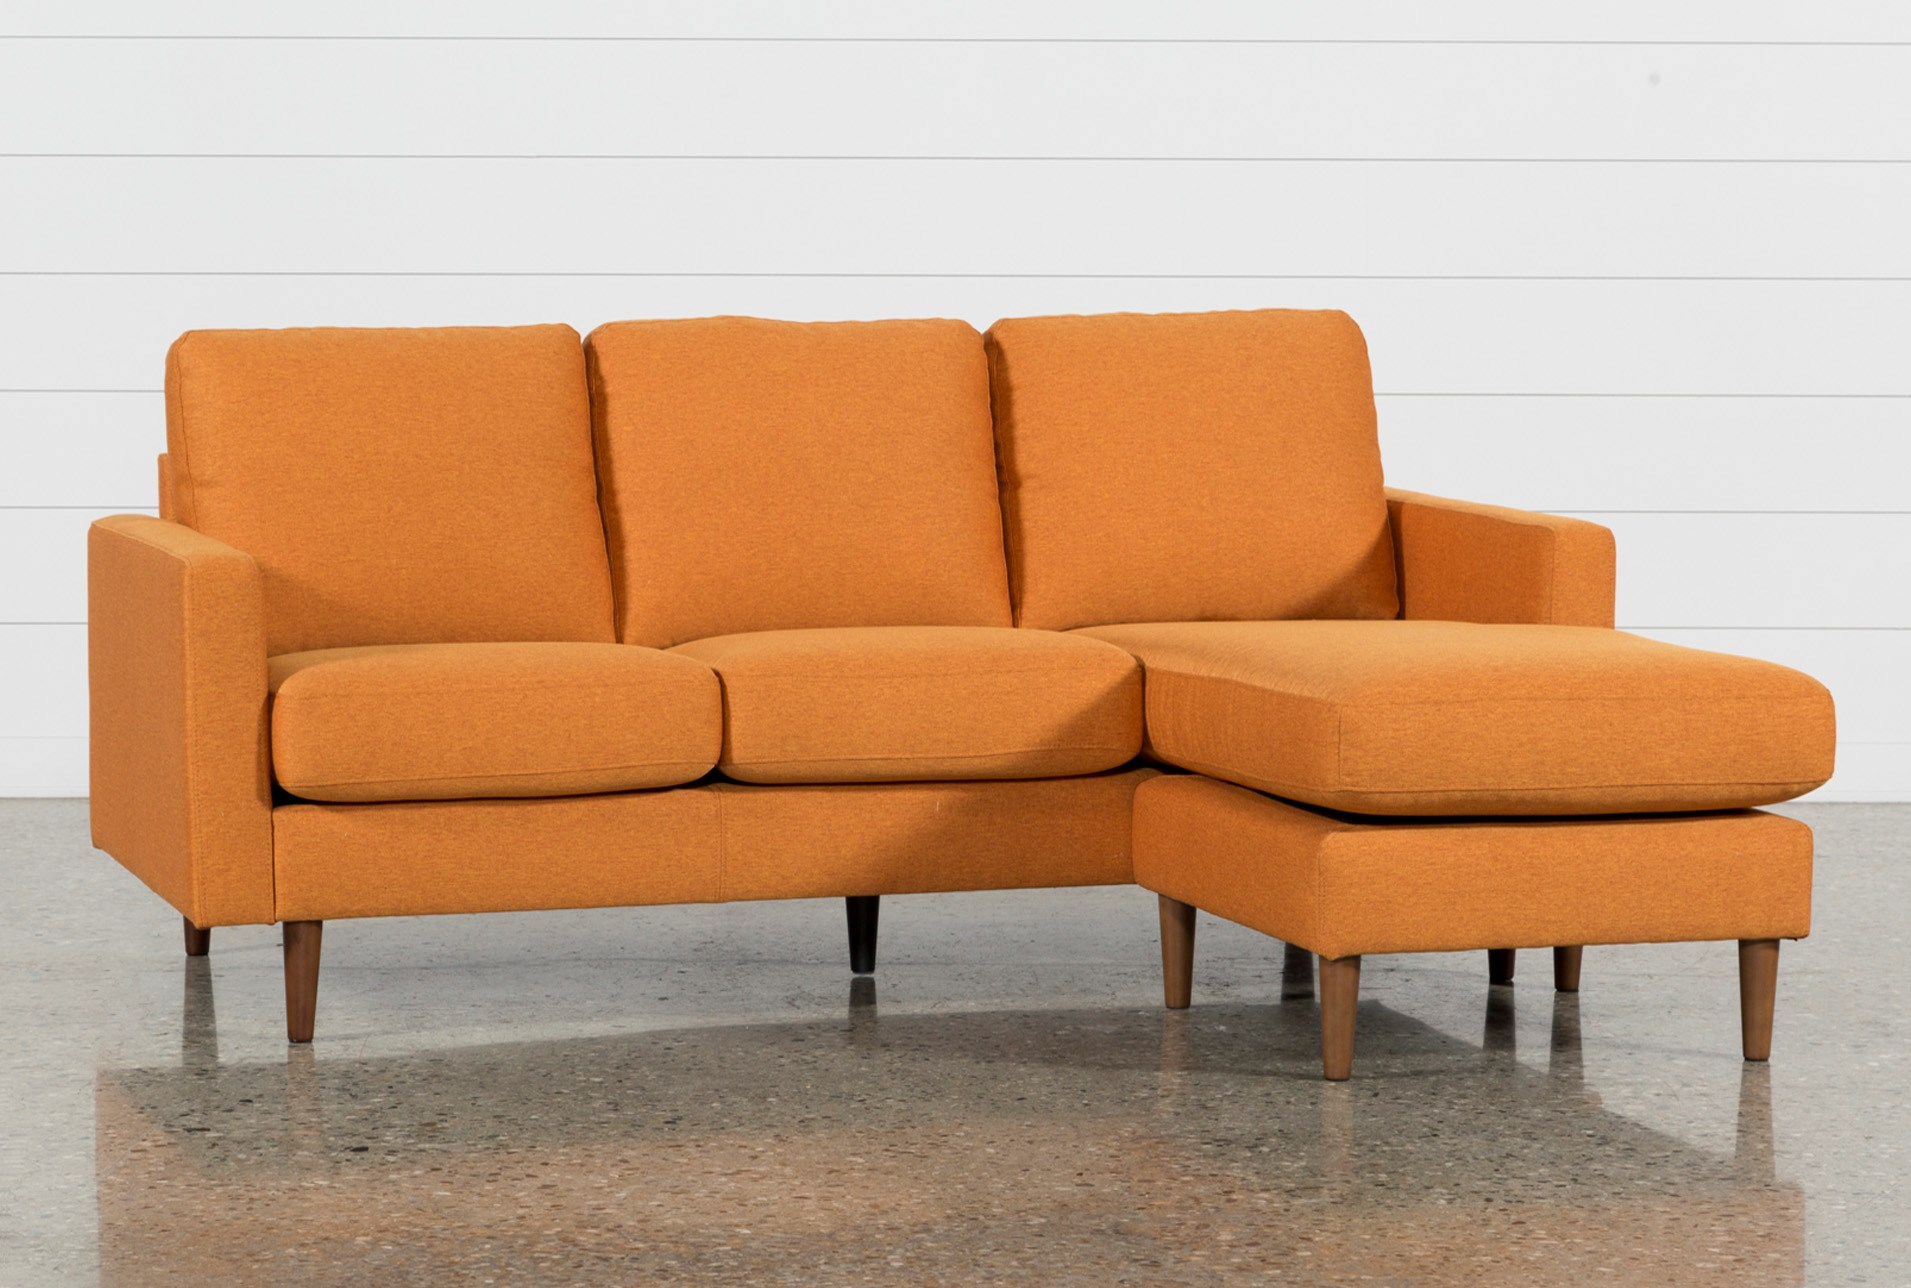 large view - Chaise Orange